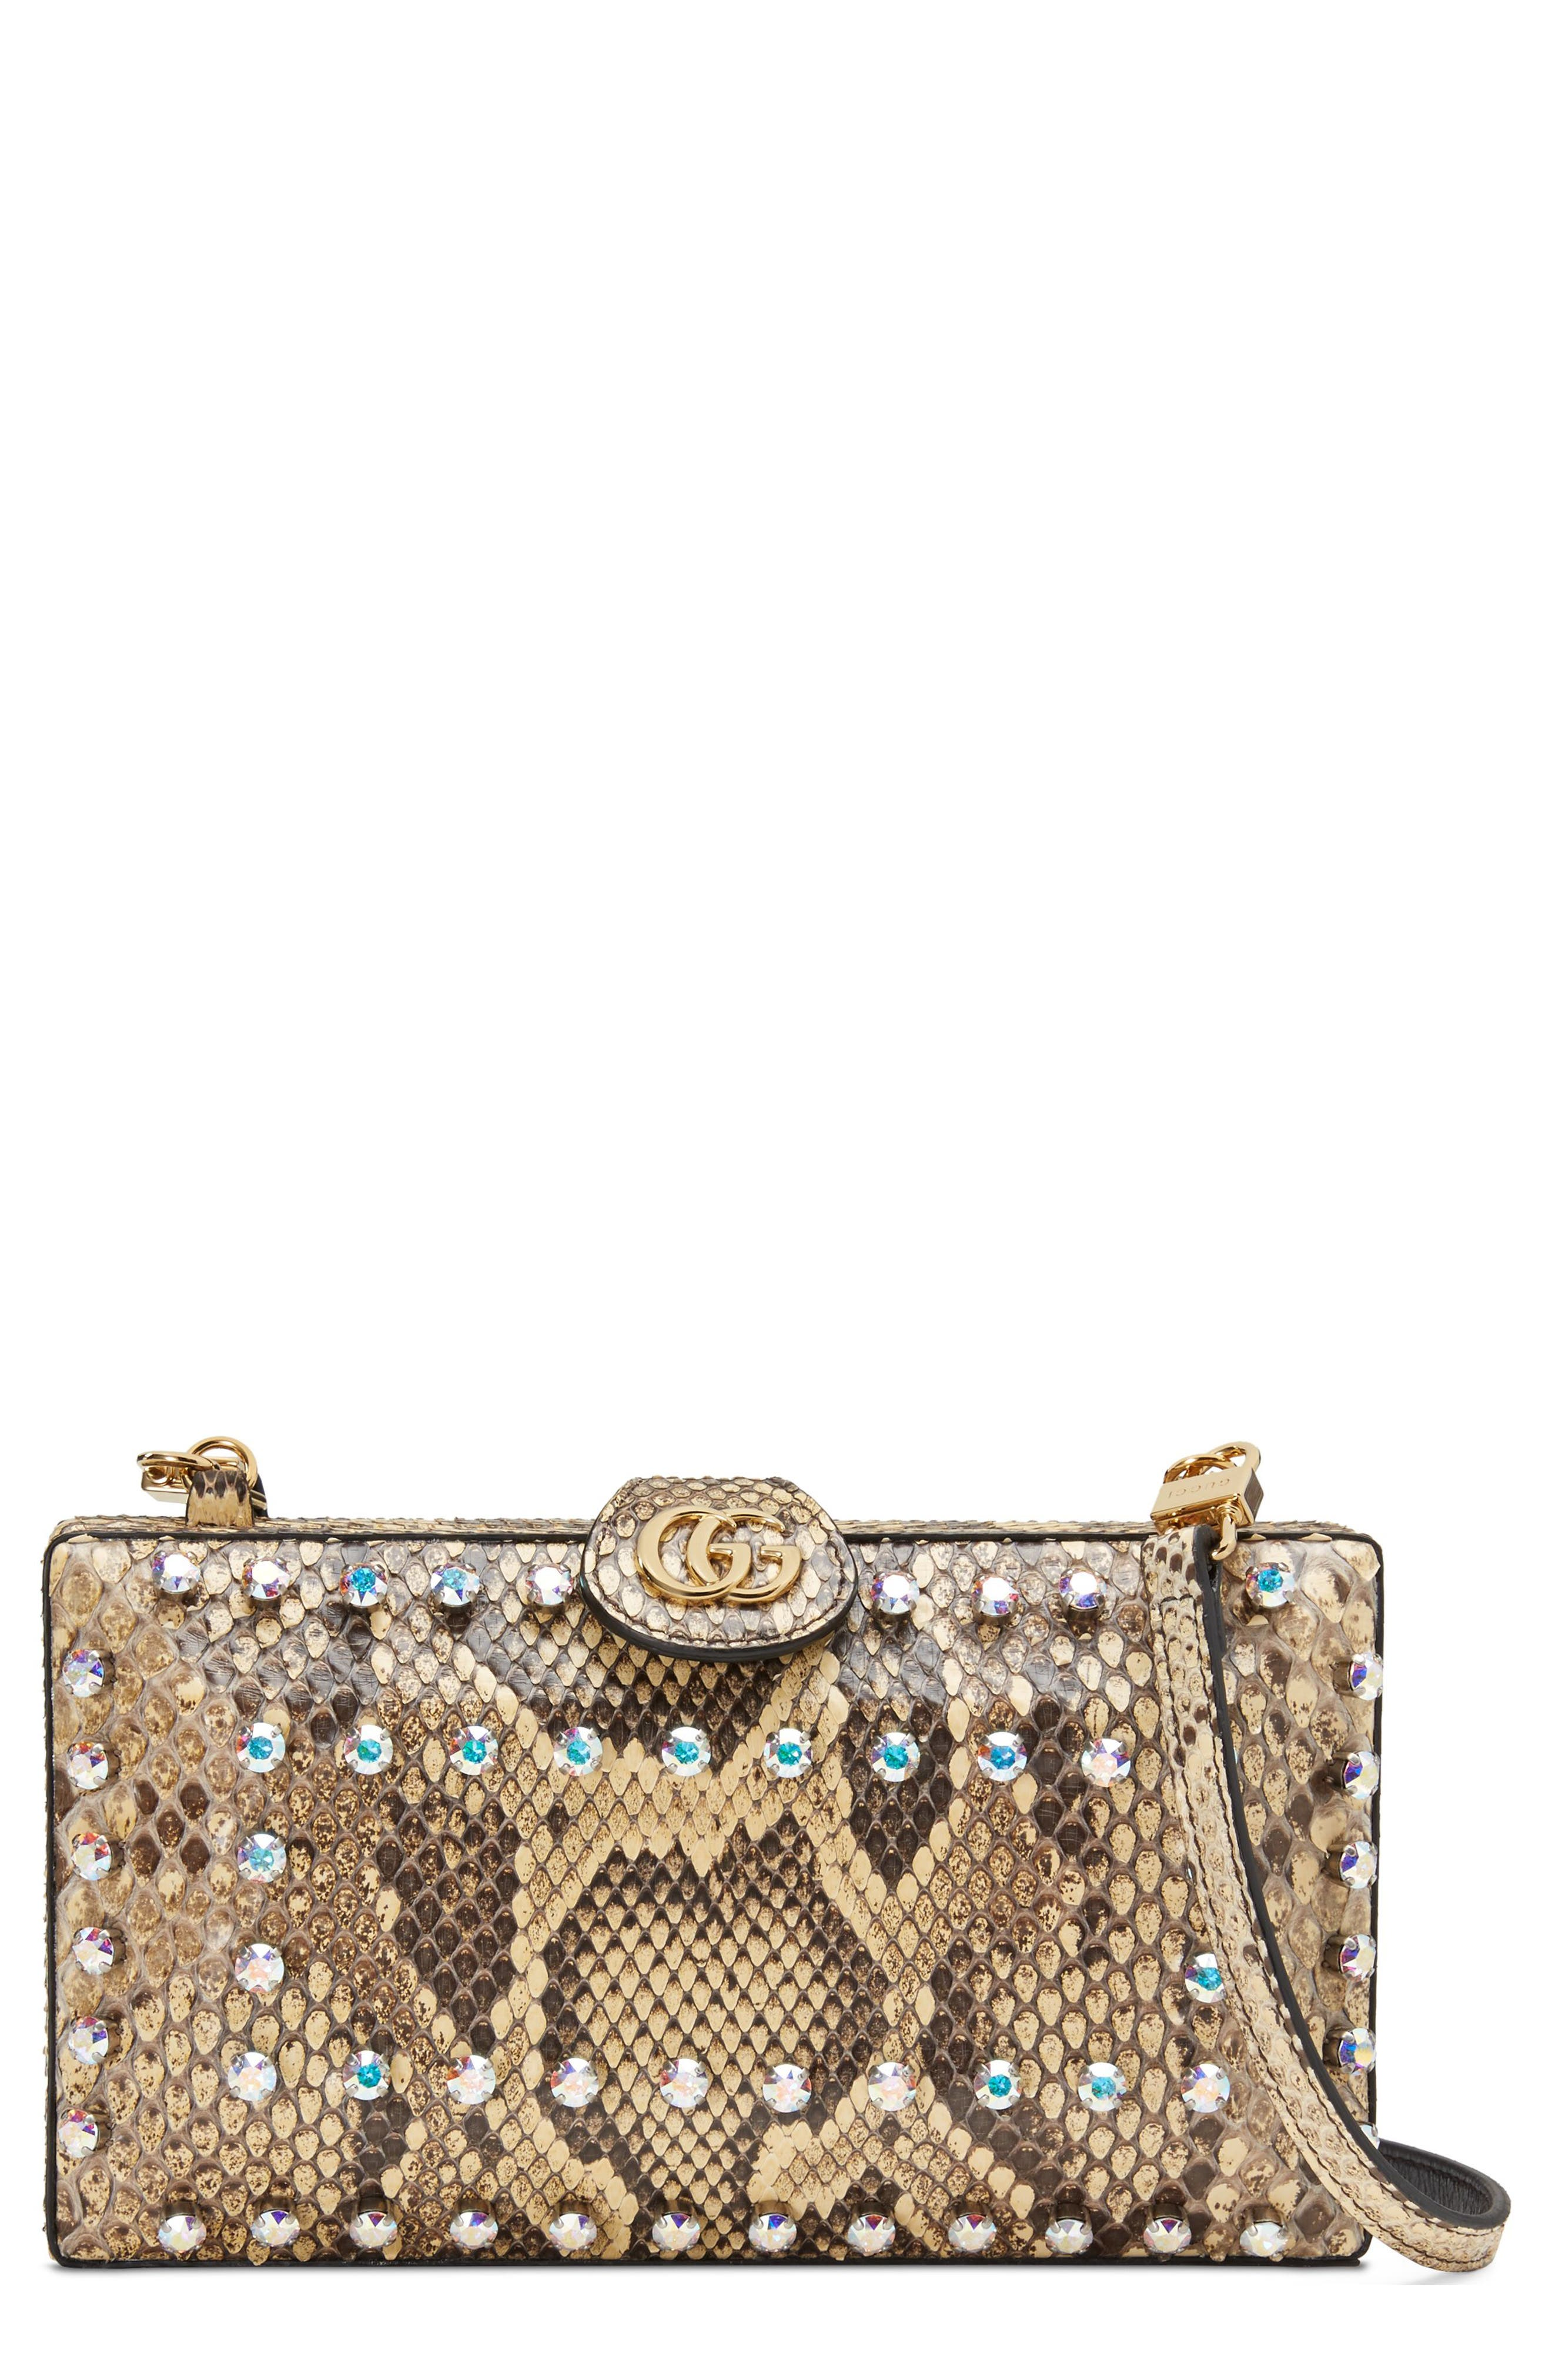 Broadway Genuine Python Minaudière,                             Main thumbnail 1, color,                             BEIGE/ NATURAL YELLOW/ CRYSTAL